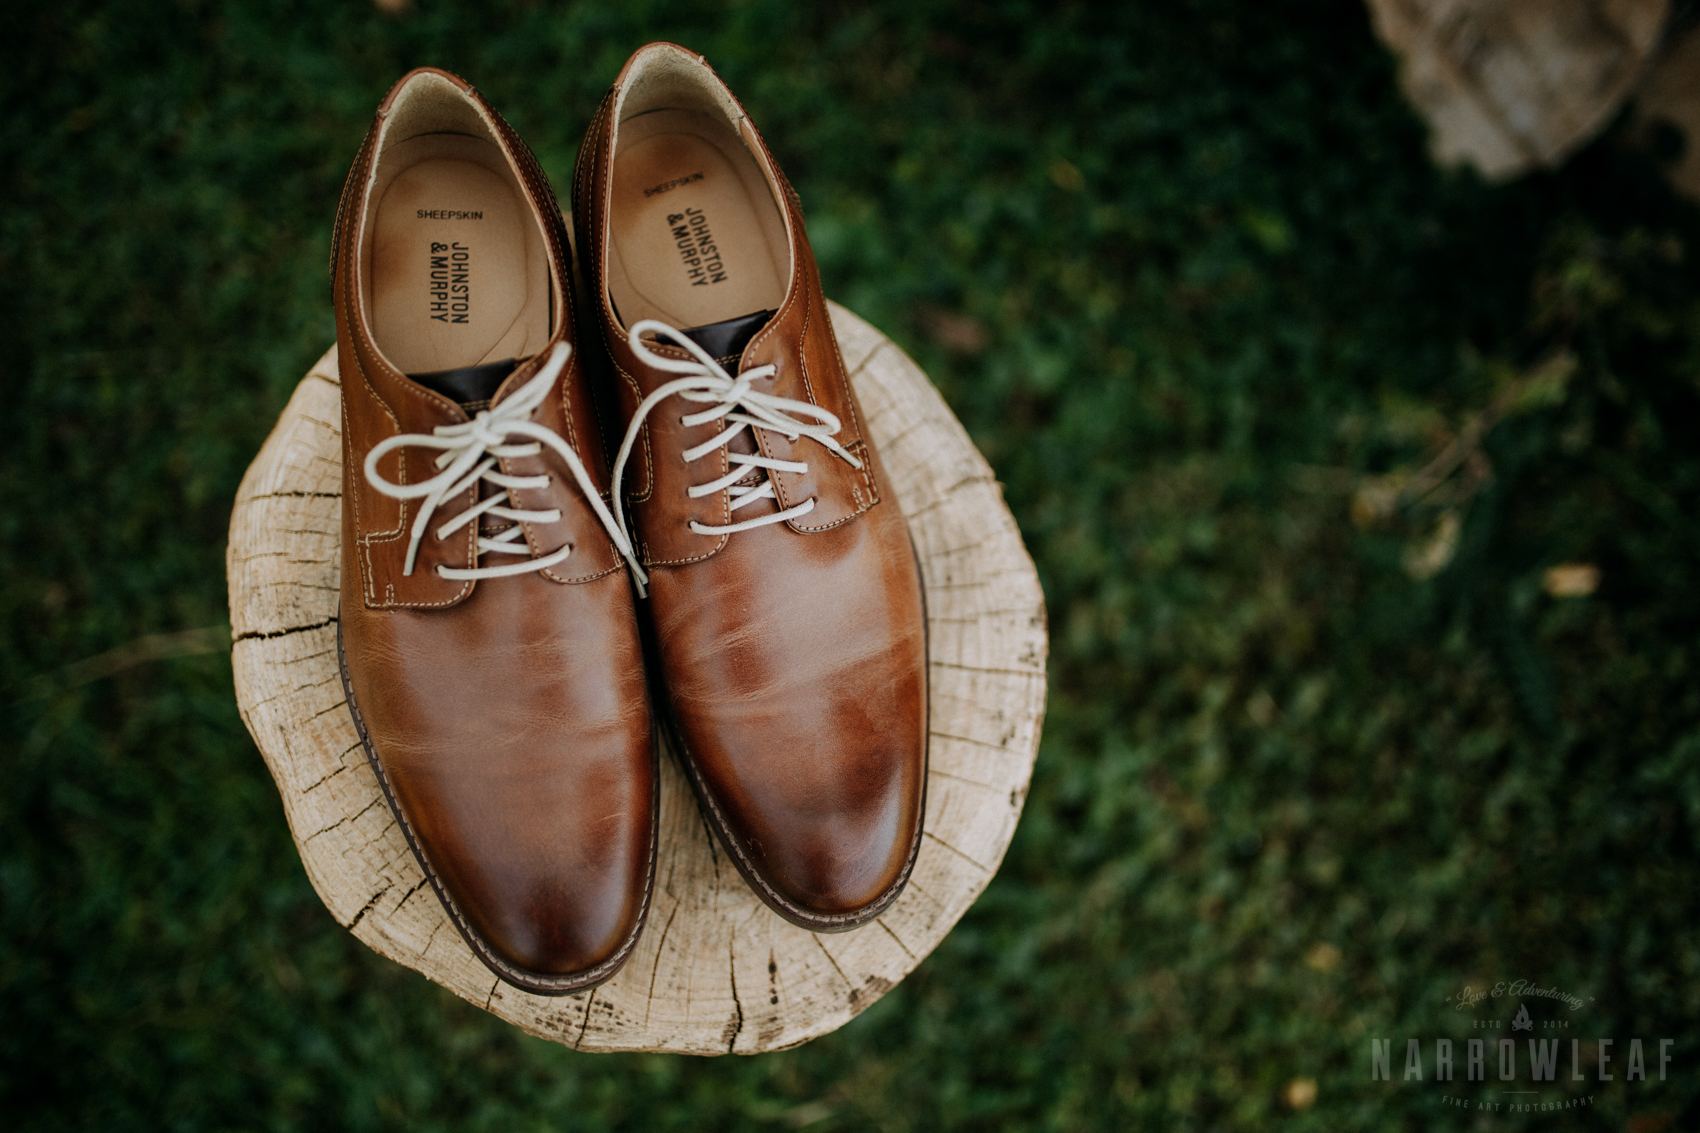 classy-groom-details-on-log-pile-leather-shoes-33.jpg